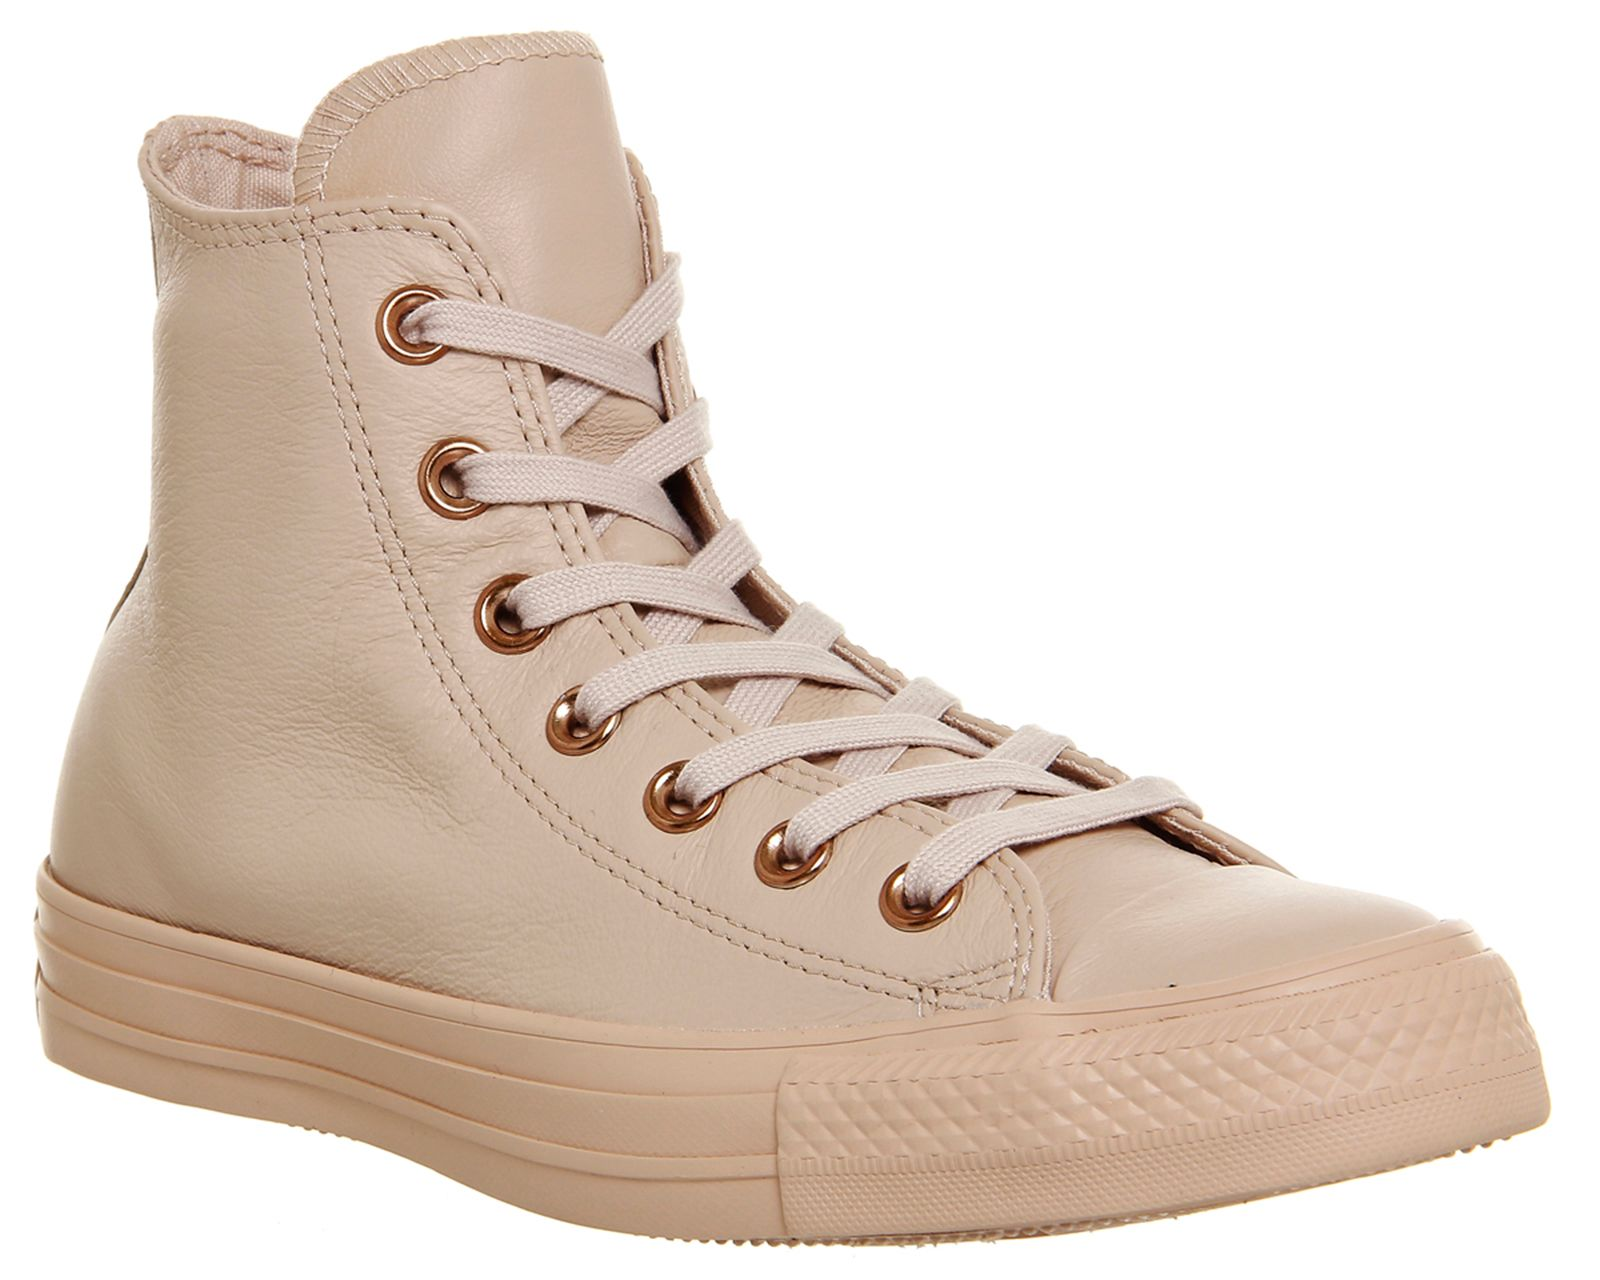 Converse All star high leather trainers Brown